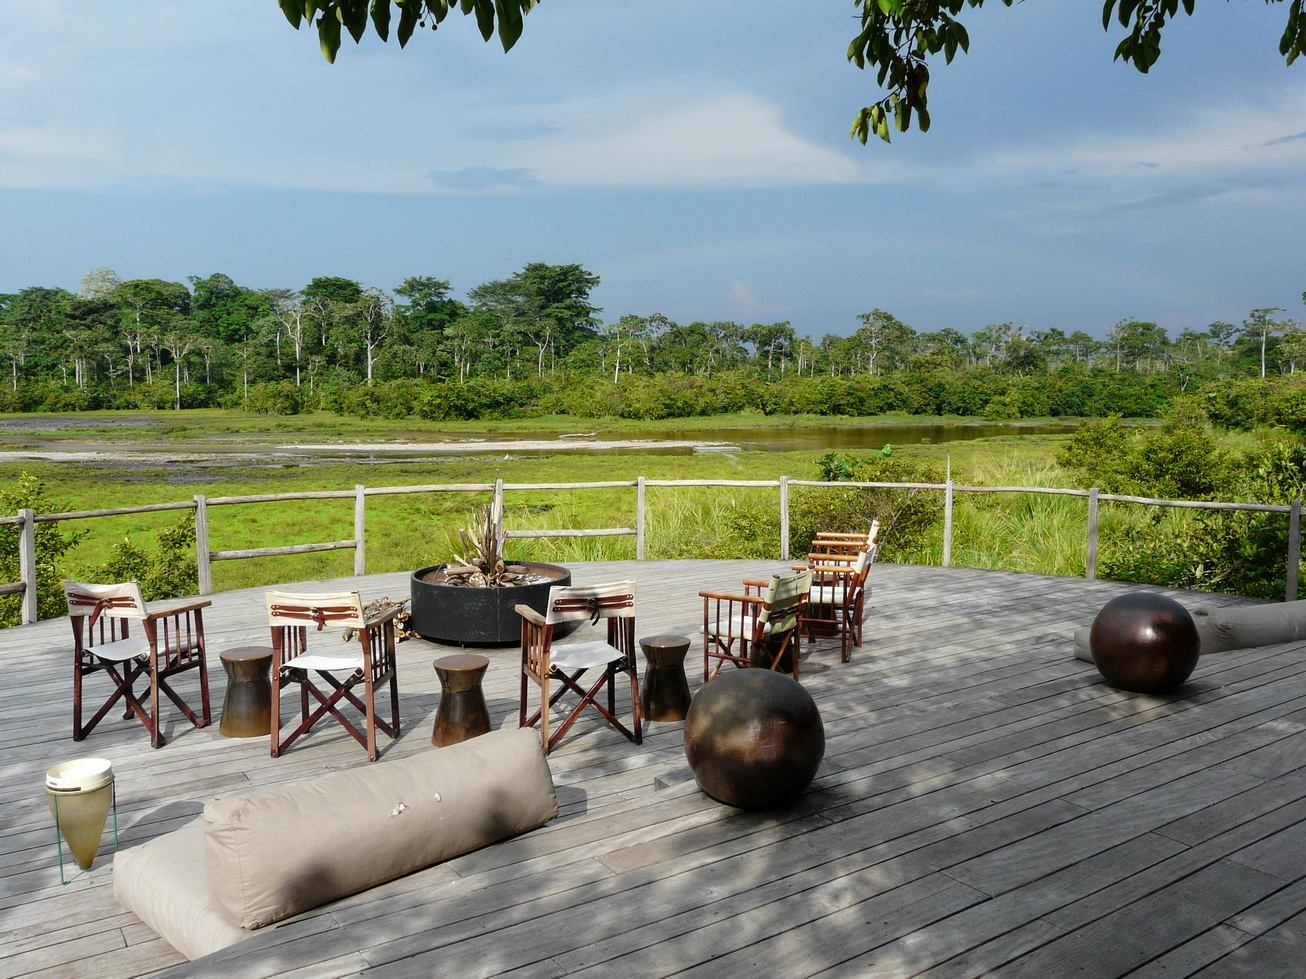 Viewing deck at Ngaga Camp, Odzala-Kokoua National Park